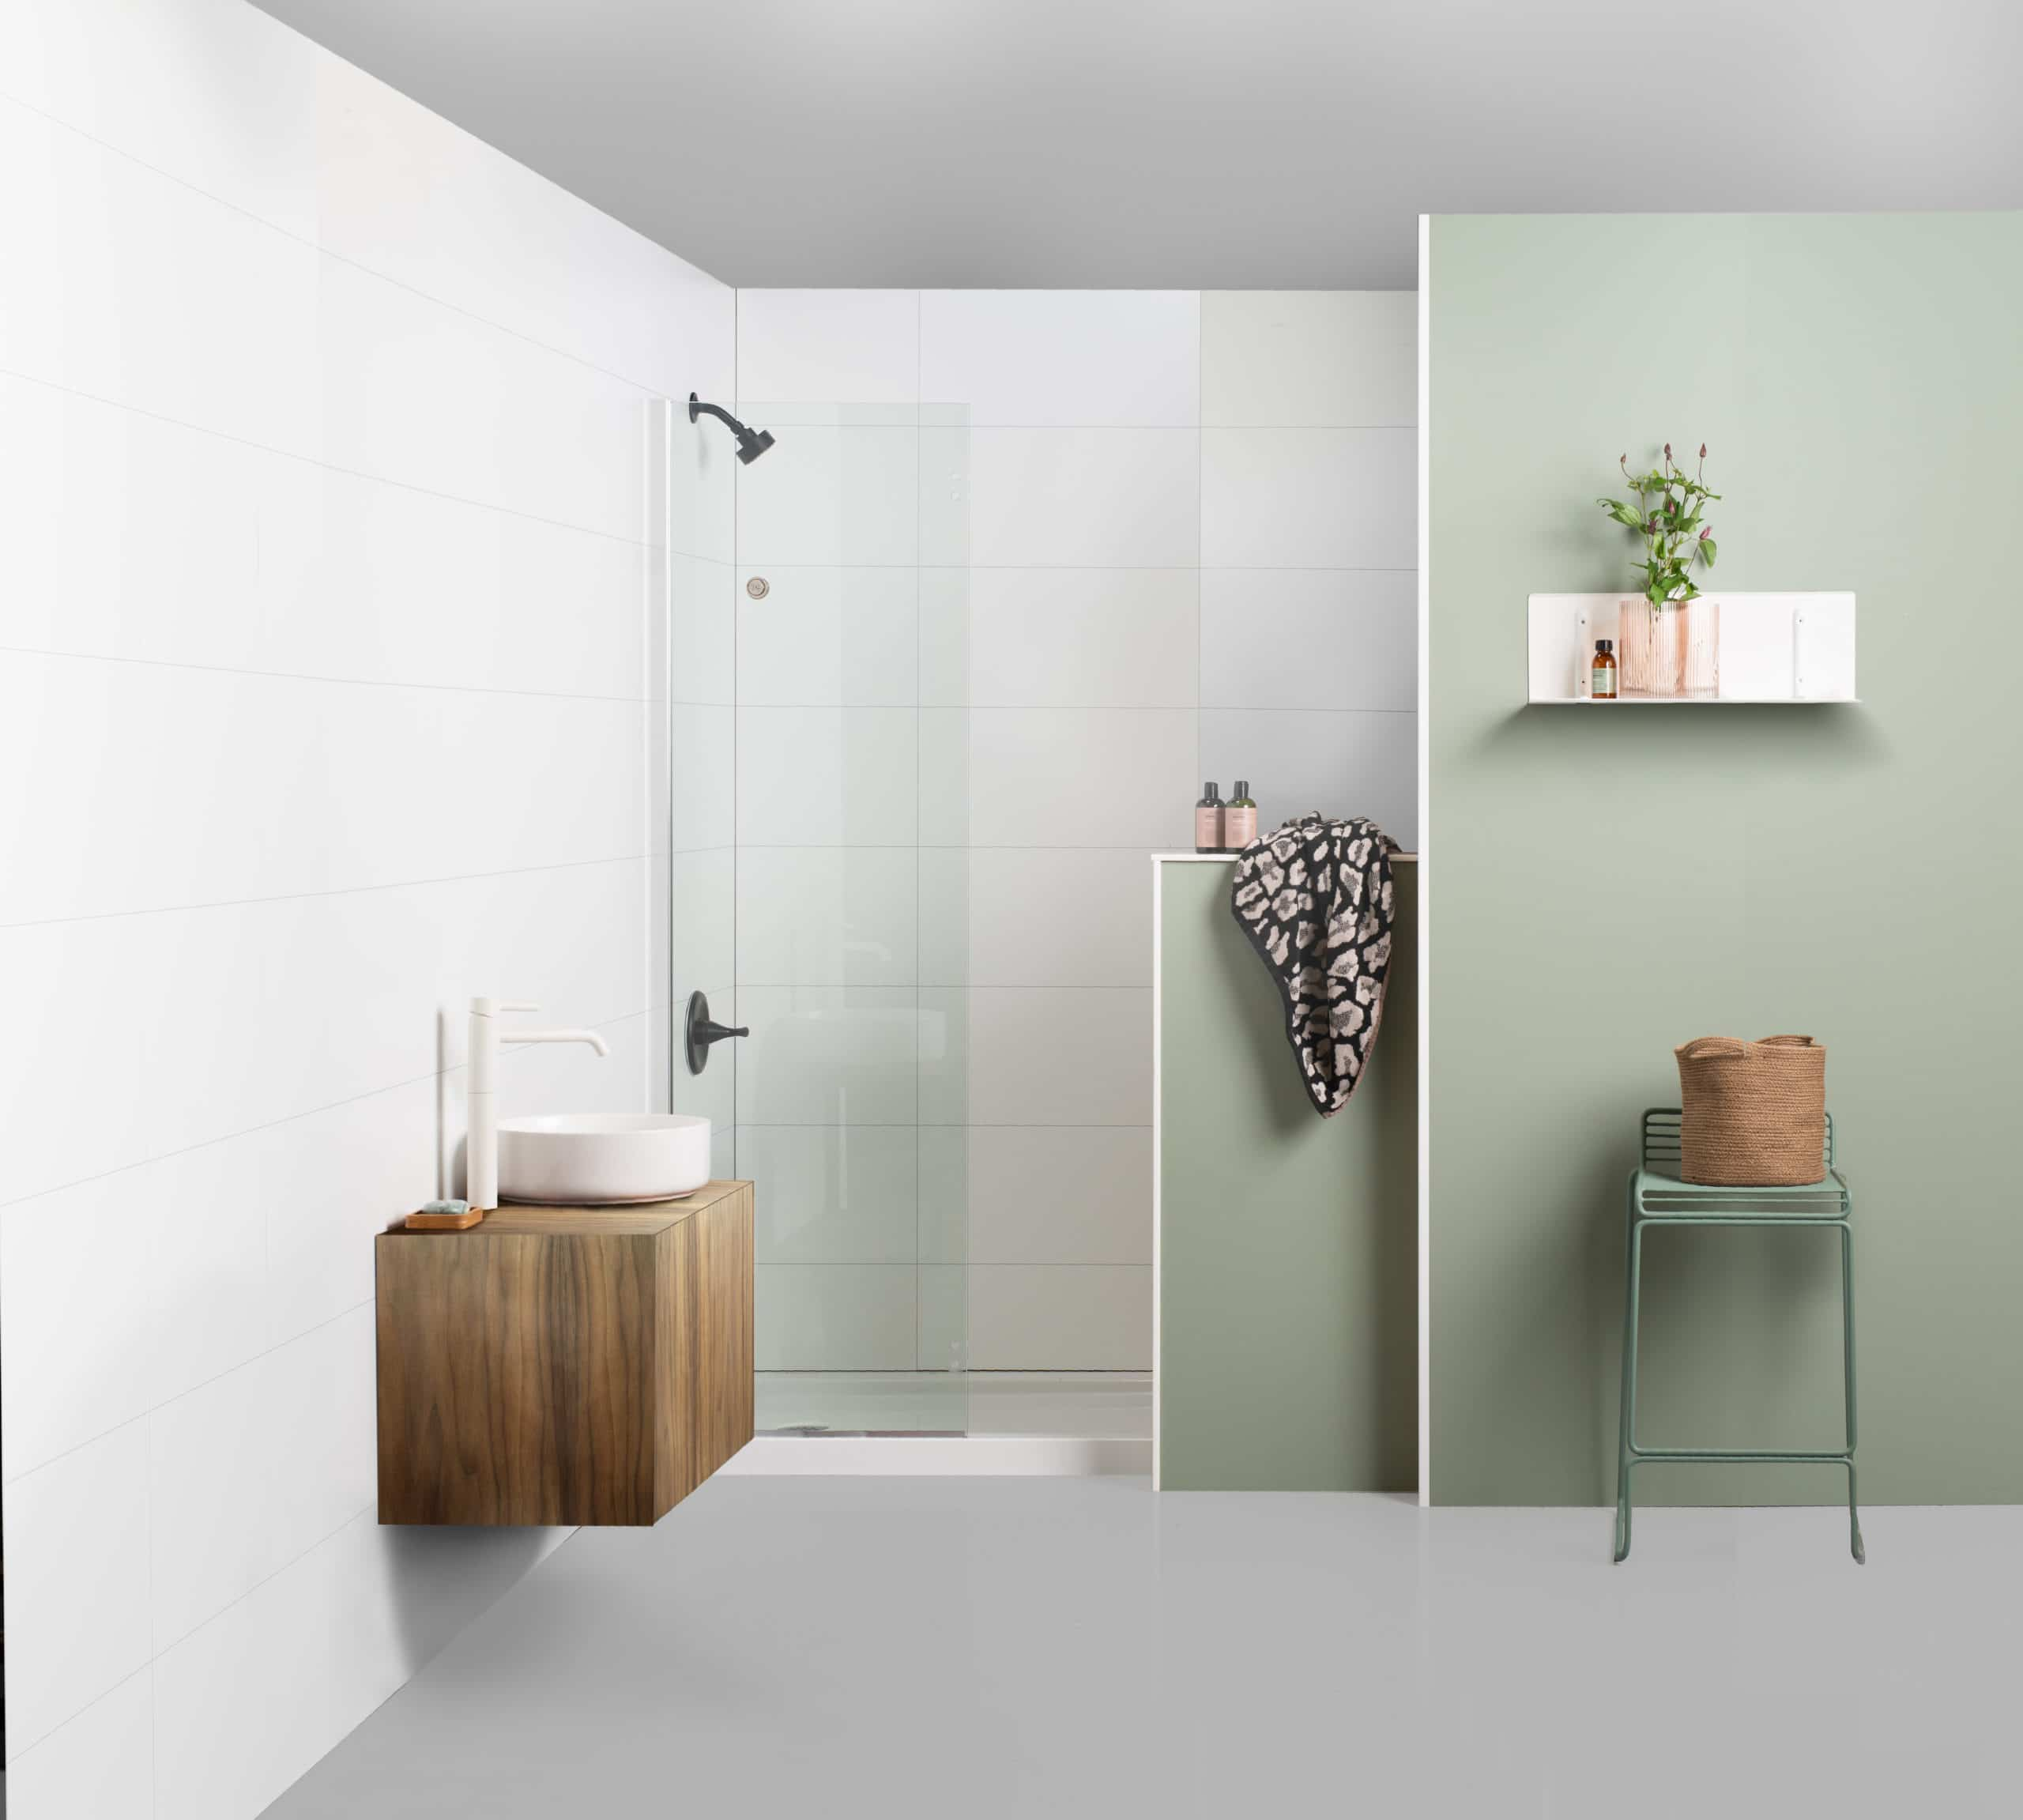 fibo  waterproof wall system for bathroom and other